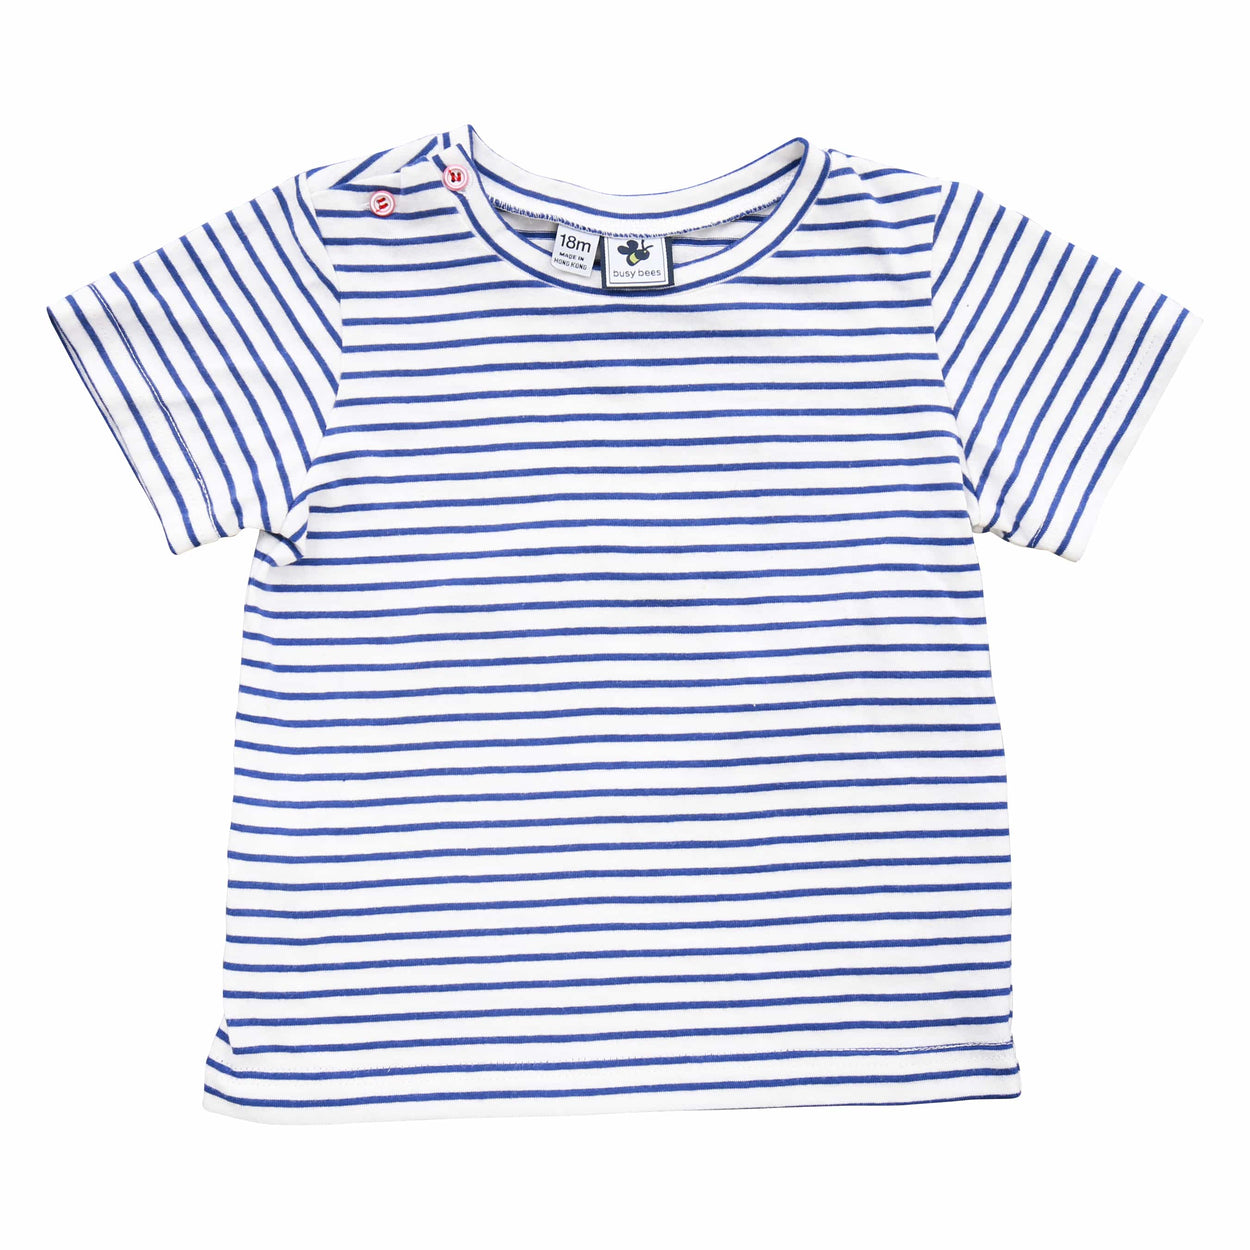 henry boys button shoulder tee blue stripe